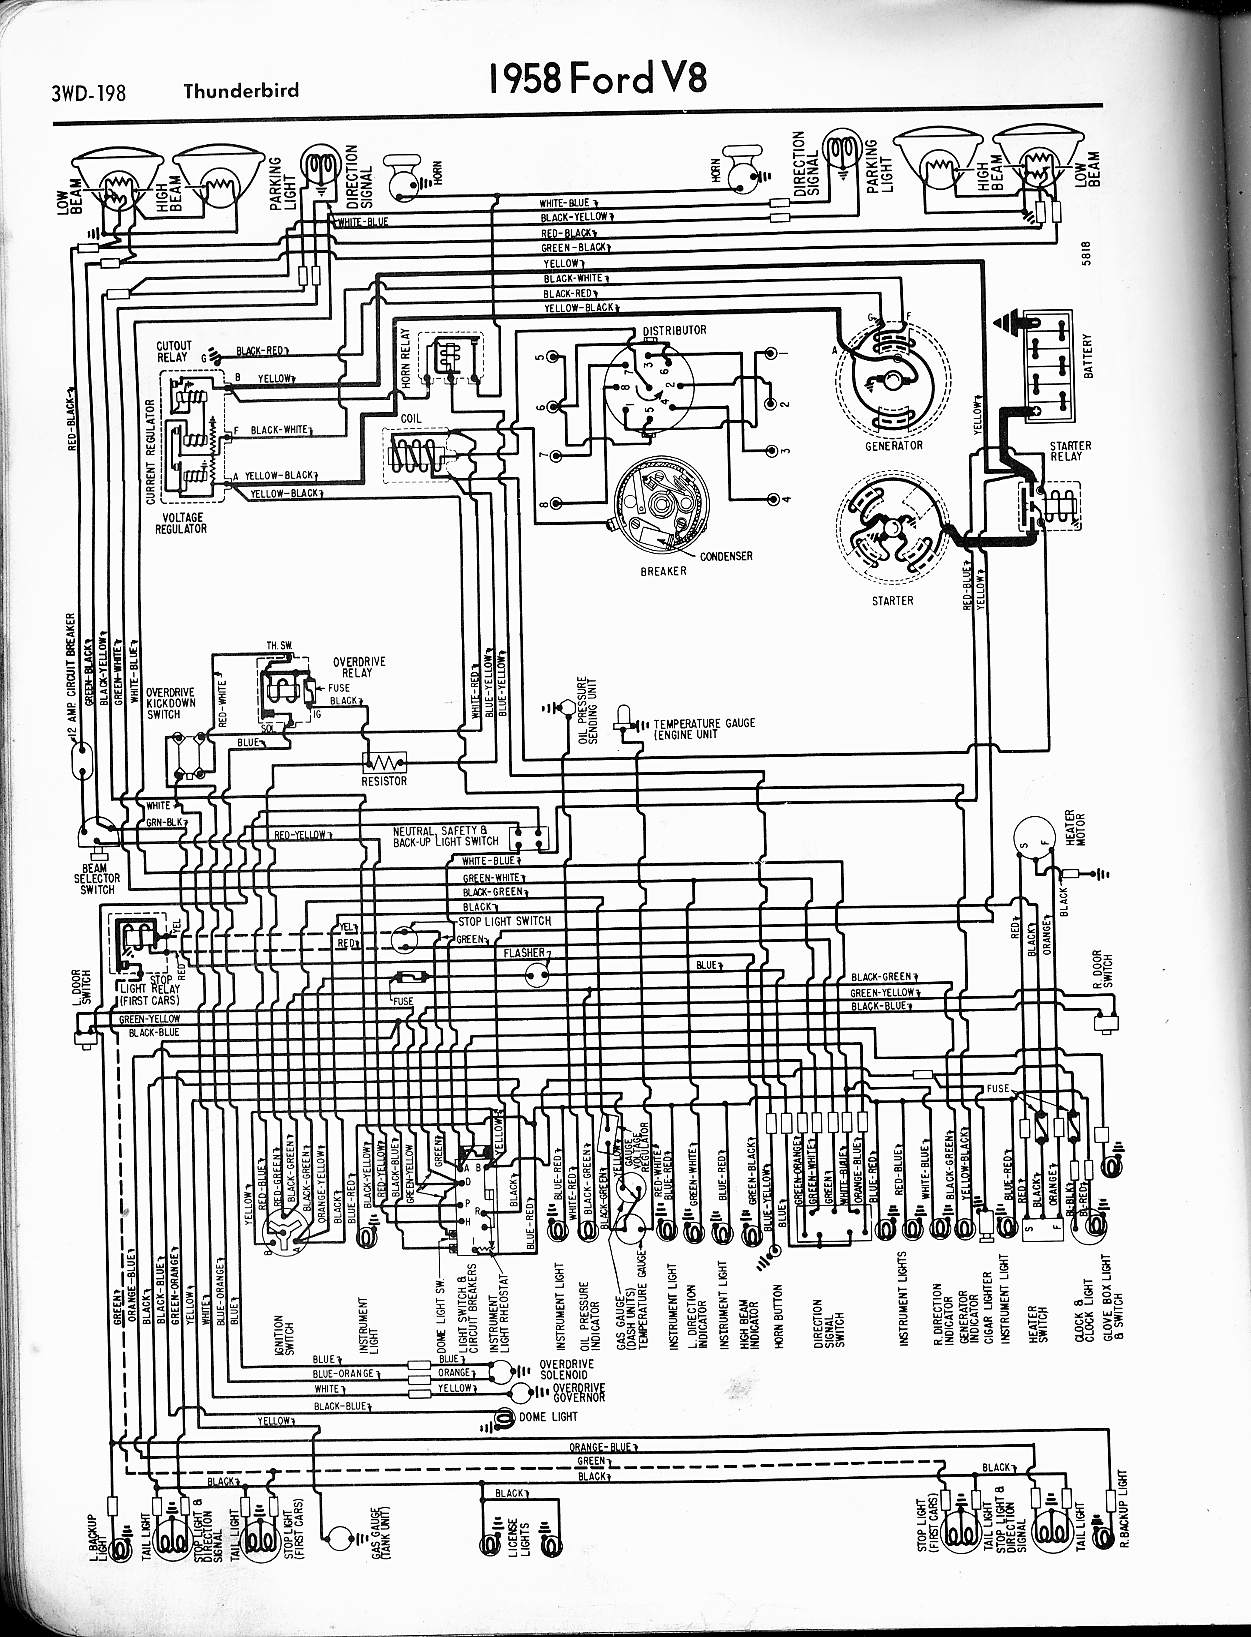 ford thunderbird wiring diagram detailed schematic diagrams rh 4rmotorsports com 1995 Ford Thunderbird Wiring Diagram 1965 ford thunderbird wiring diagram